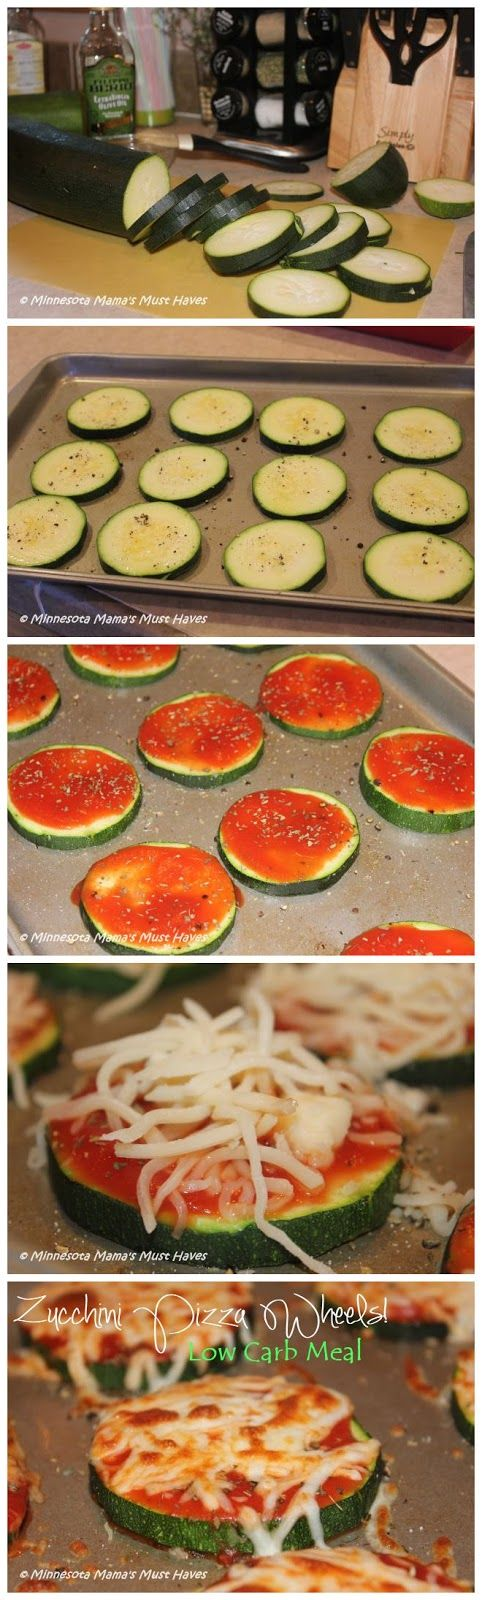 Zucchini mini pizzas Large Zucchini, sliced into slices Olive Oil for brushing on Tomato sauce (8 oz or less) Italian seasoning or your favorite herbs Cup mozzarella cheese salt cracked pepper Bake @ 375 30-40 mins